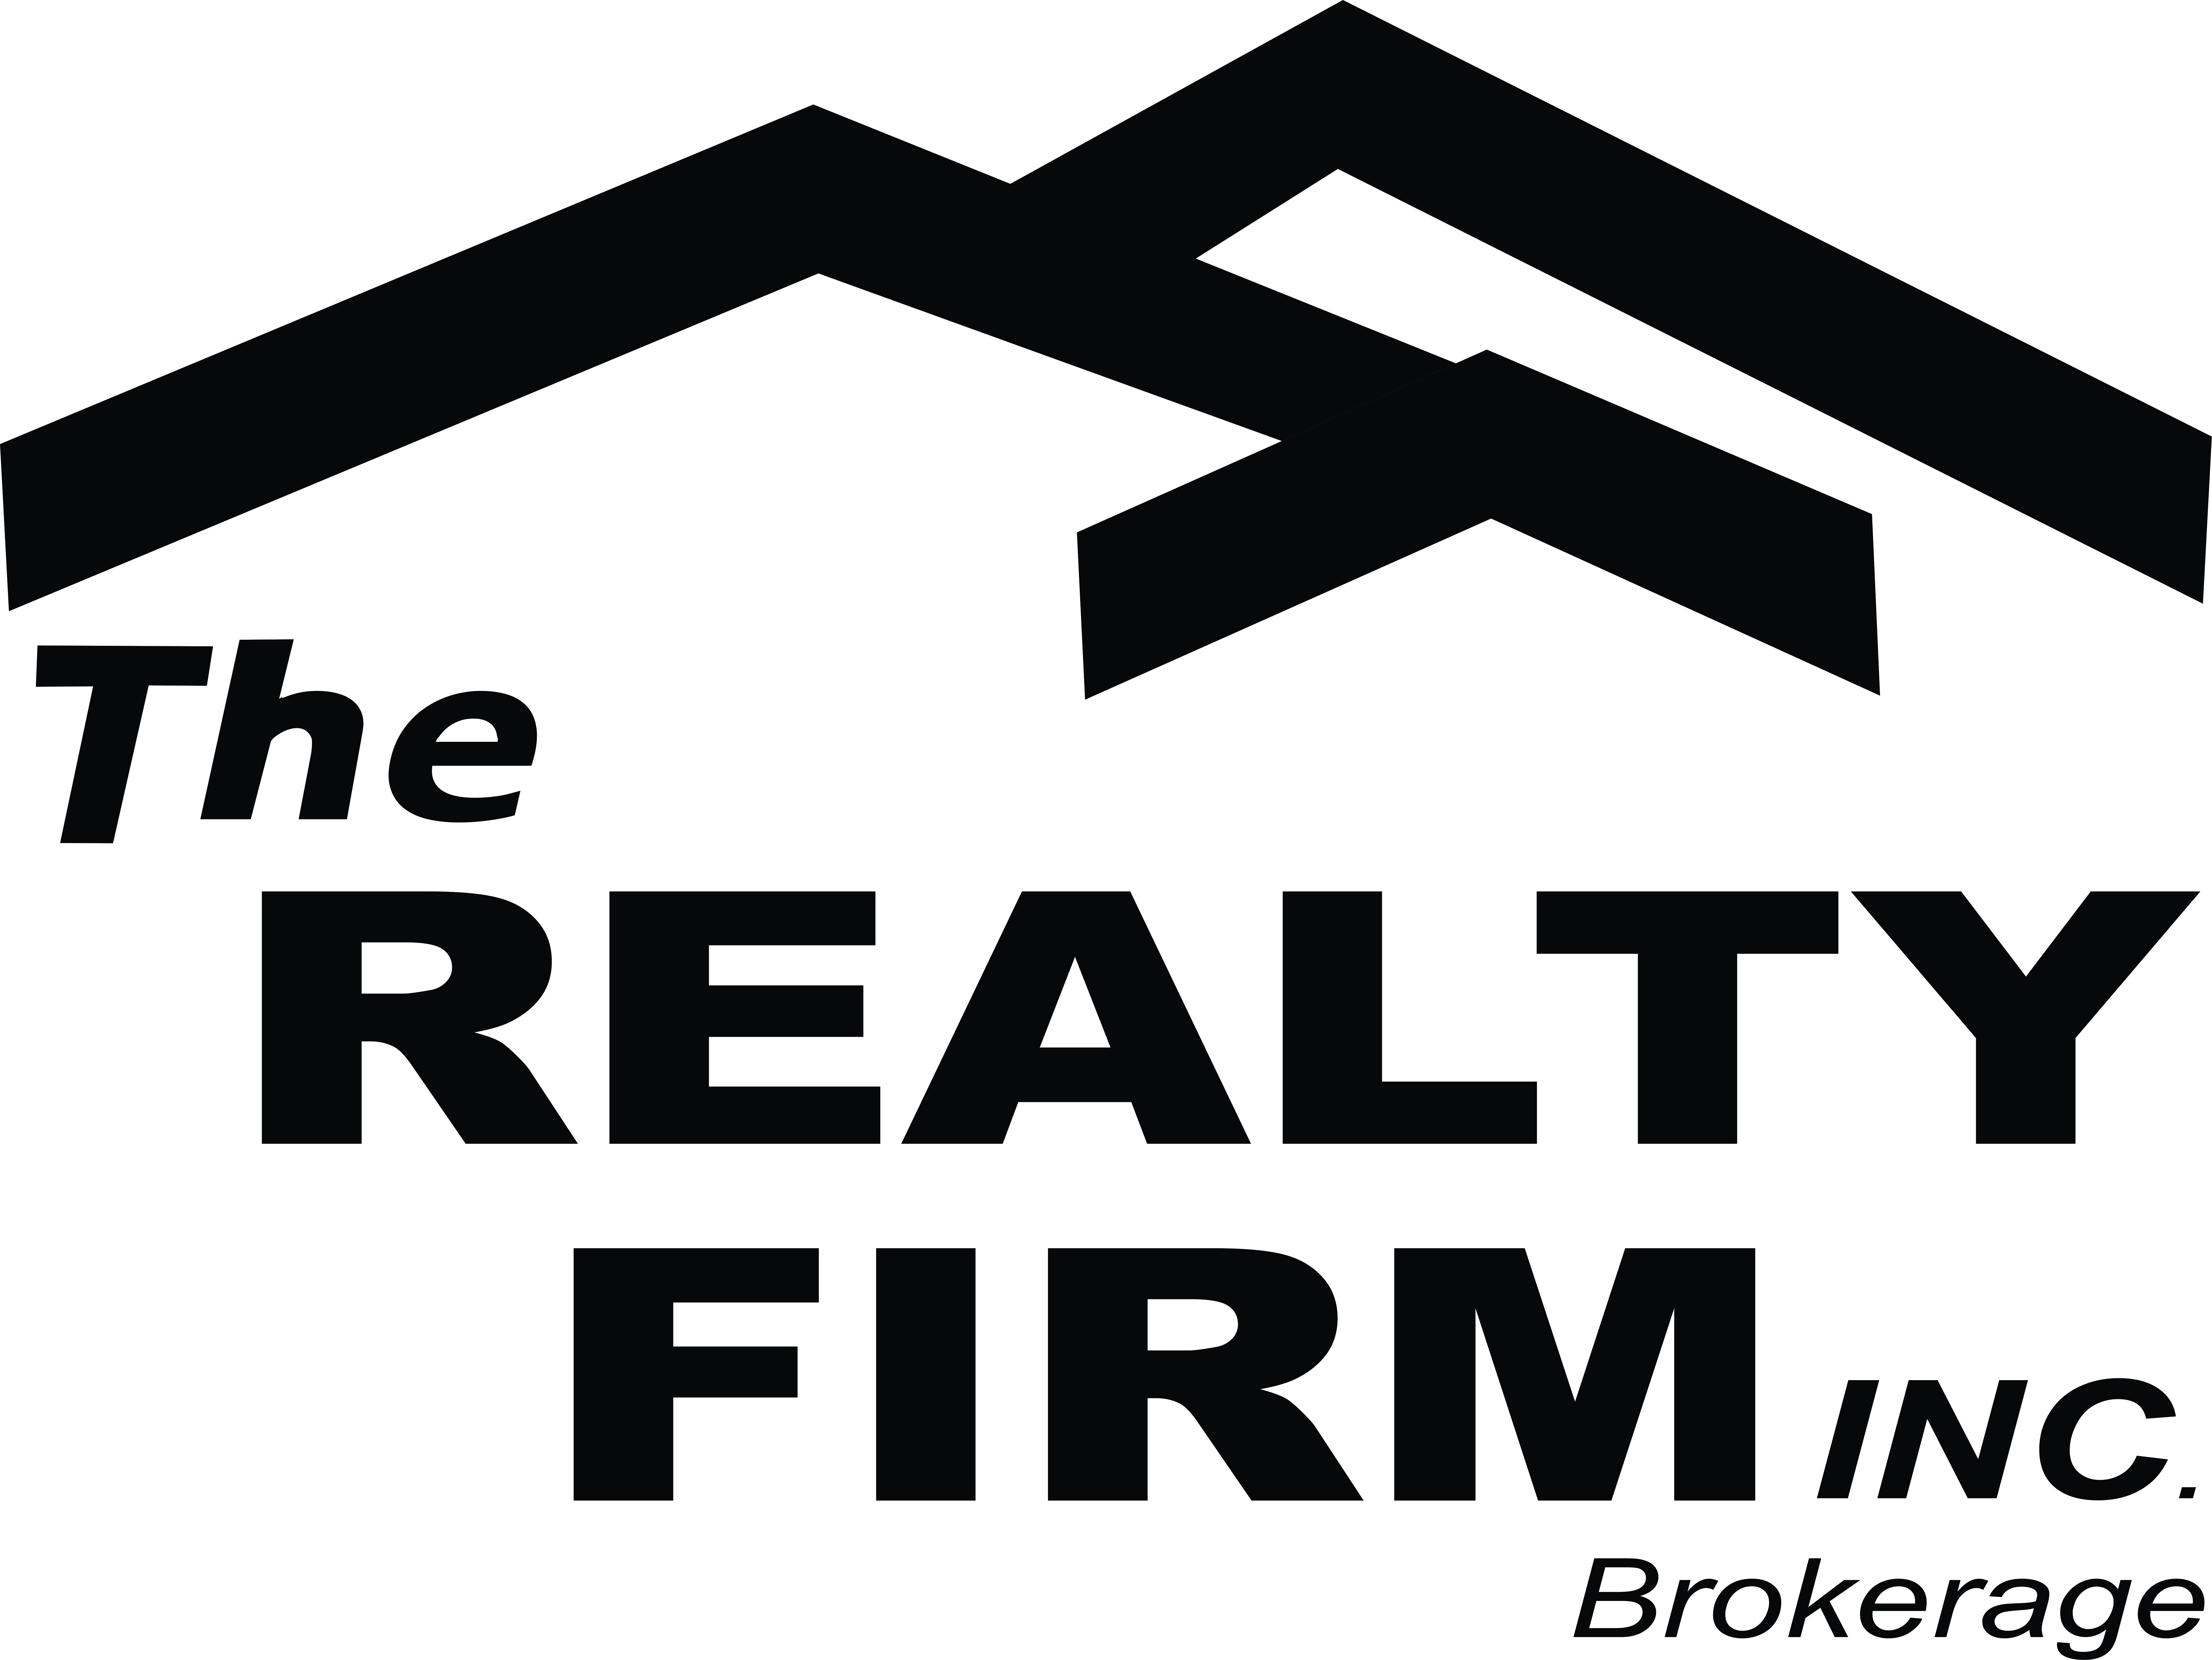 The Realty Firm, Brokerage*